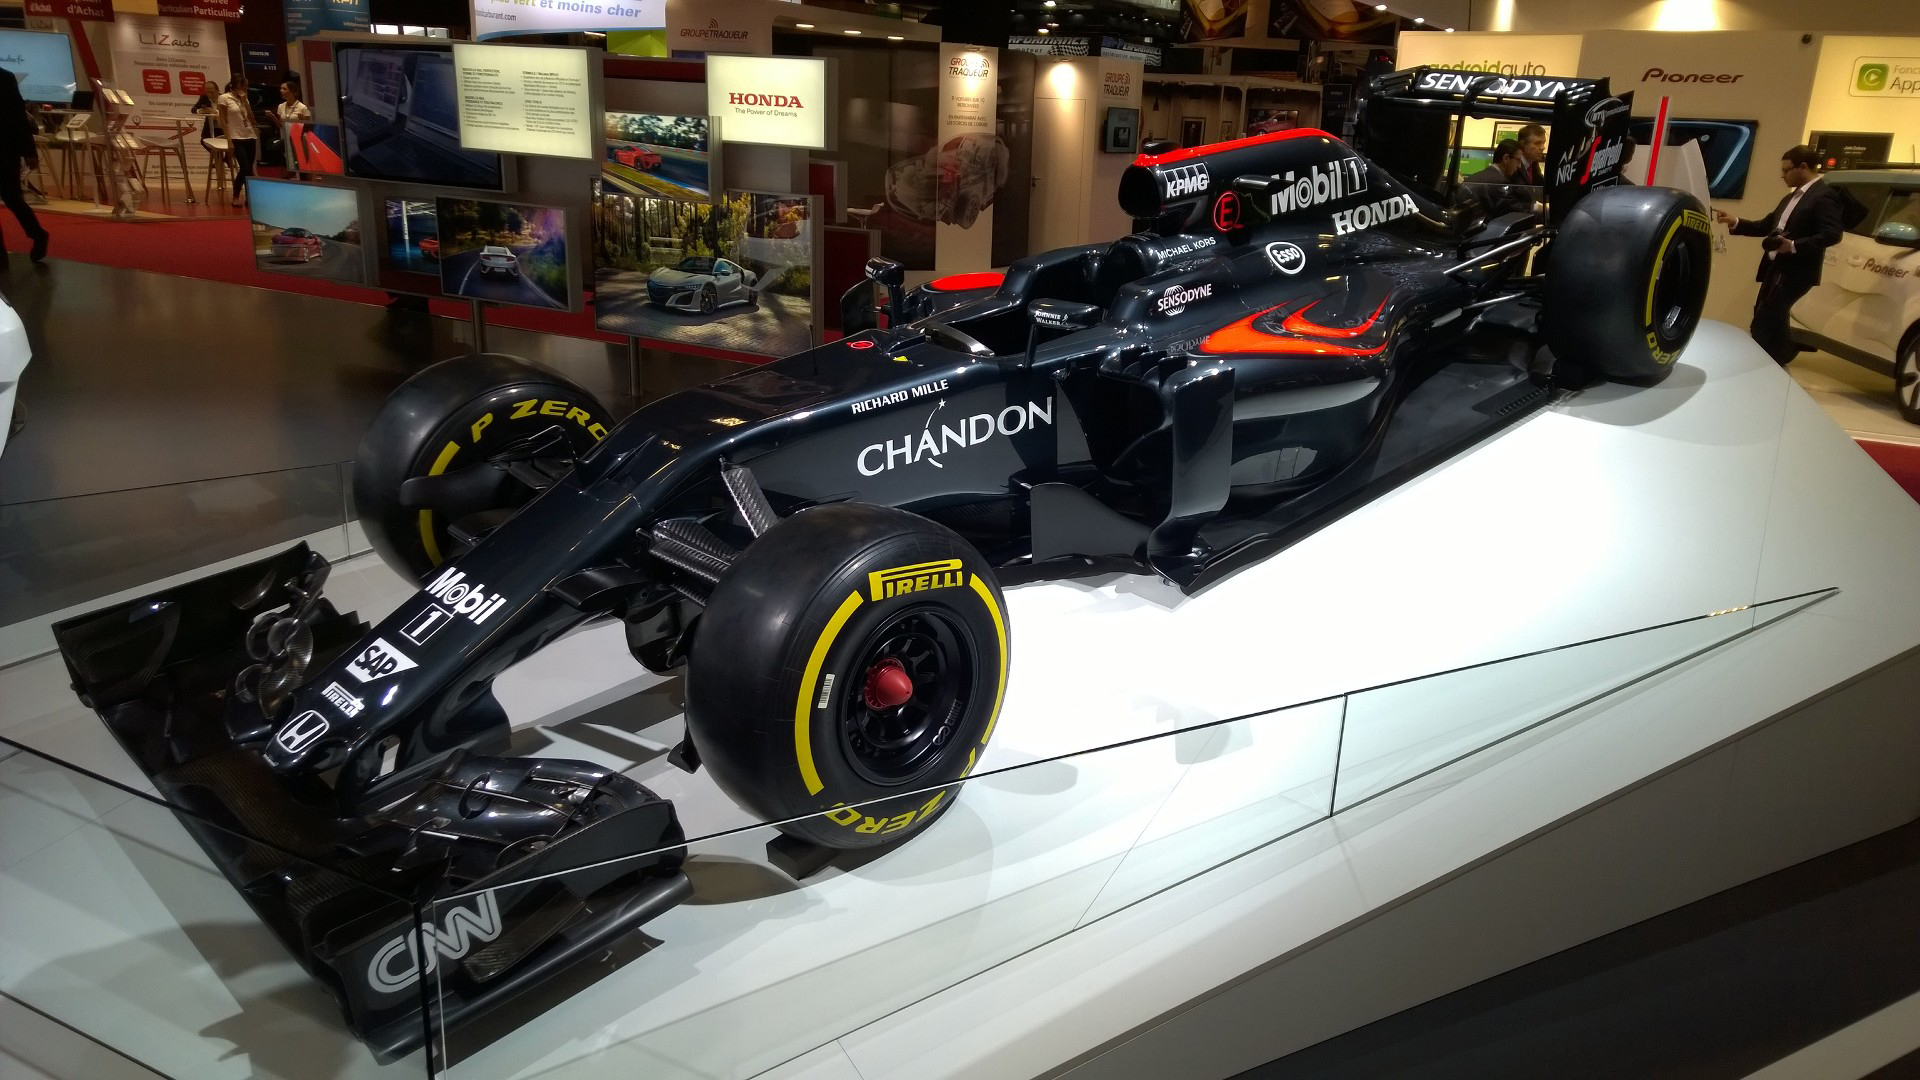 F1 McLaren Honda MP4-31 - 2016 - Mondial Auto - photo ELJ DM